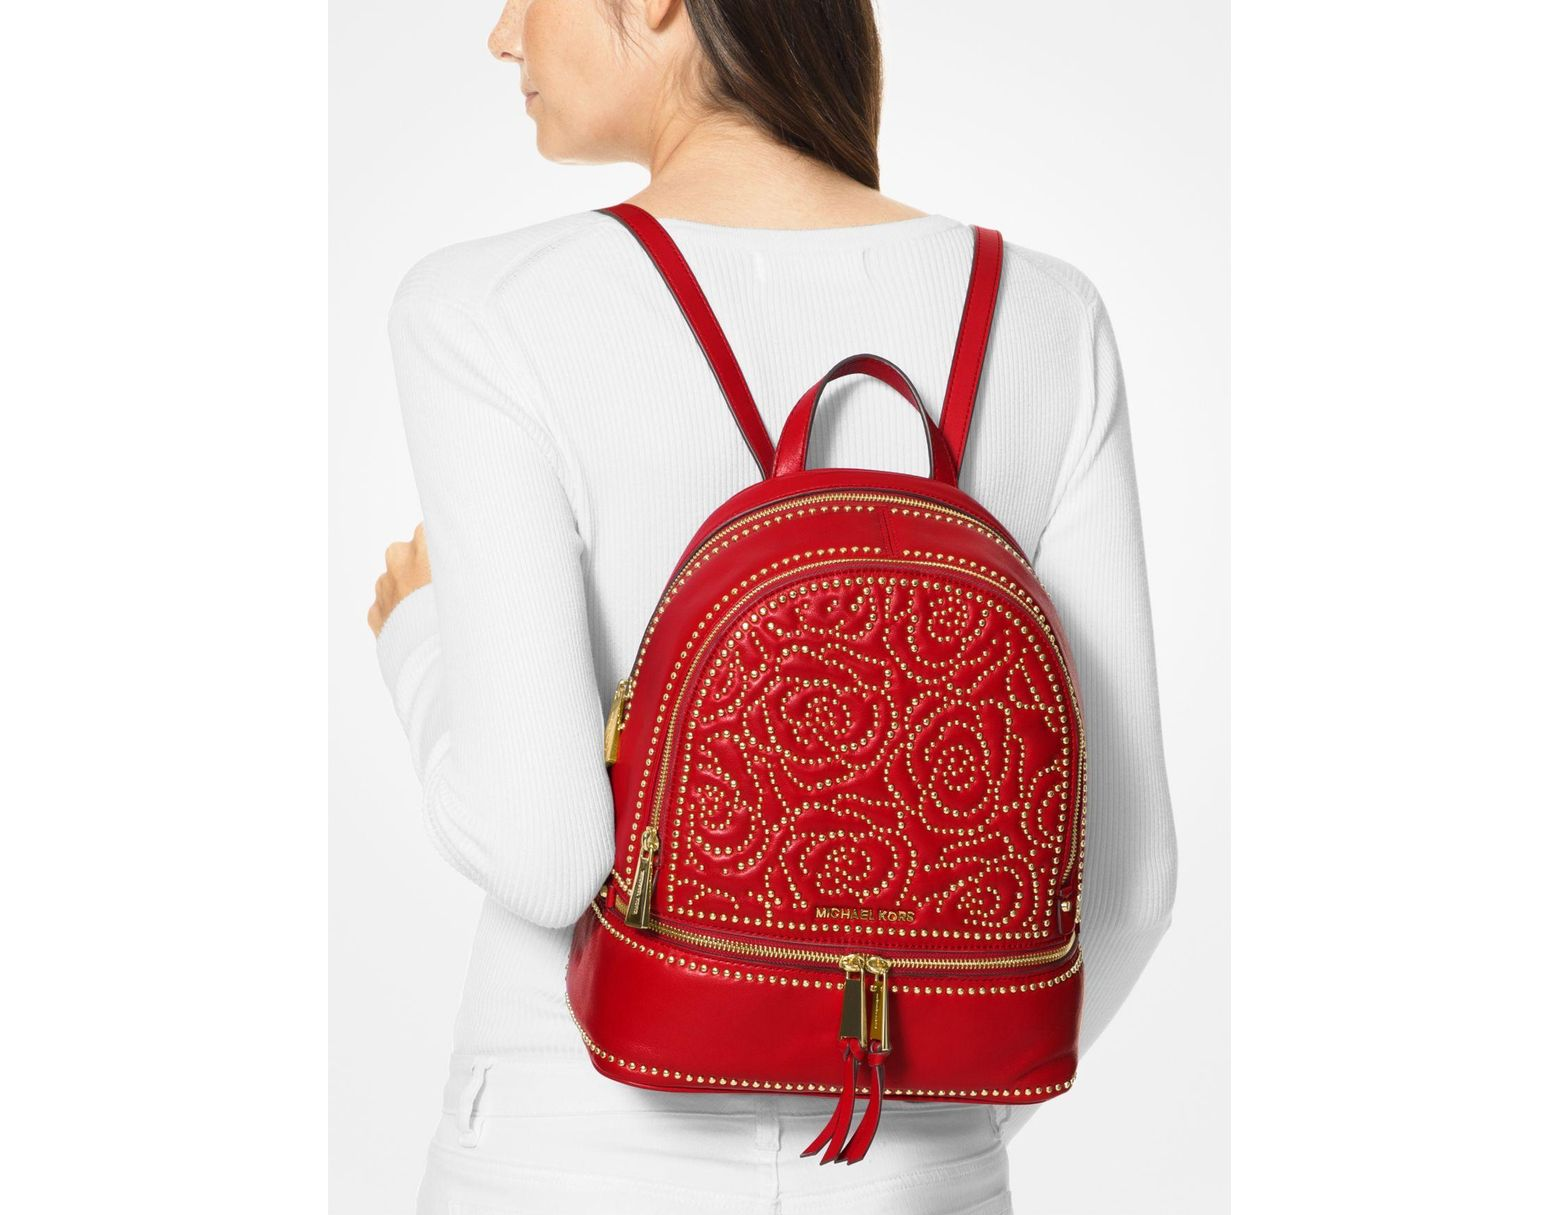 f427bd39159 MICHAEL Michael Kors Rhea Medium Rose Studded Leather Backpack in Red -  Save 57% - Lyst